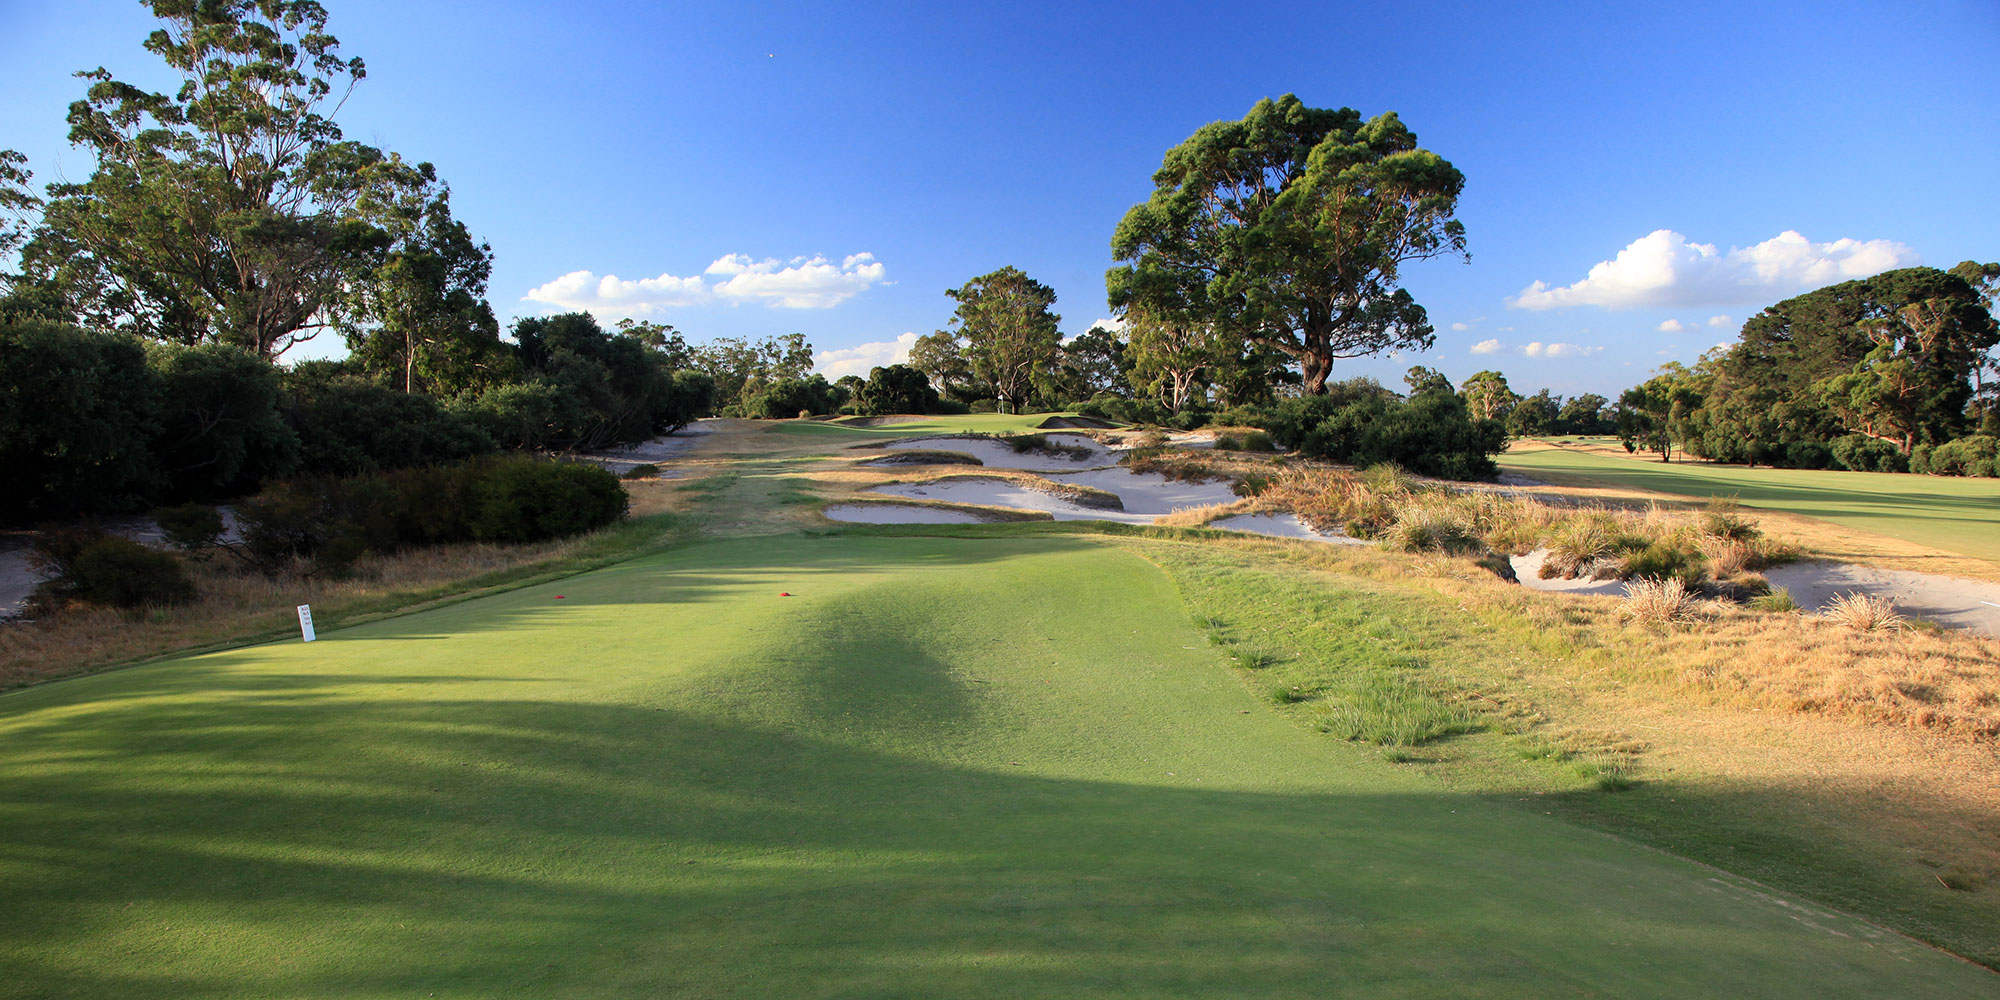 Melbourne Sandbelt Tour | 13 - 17 September 2021 | 4 nights, 5 games